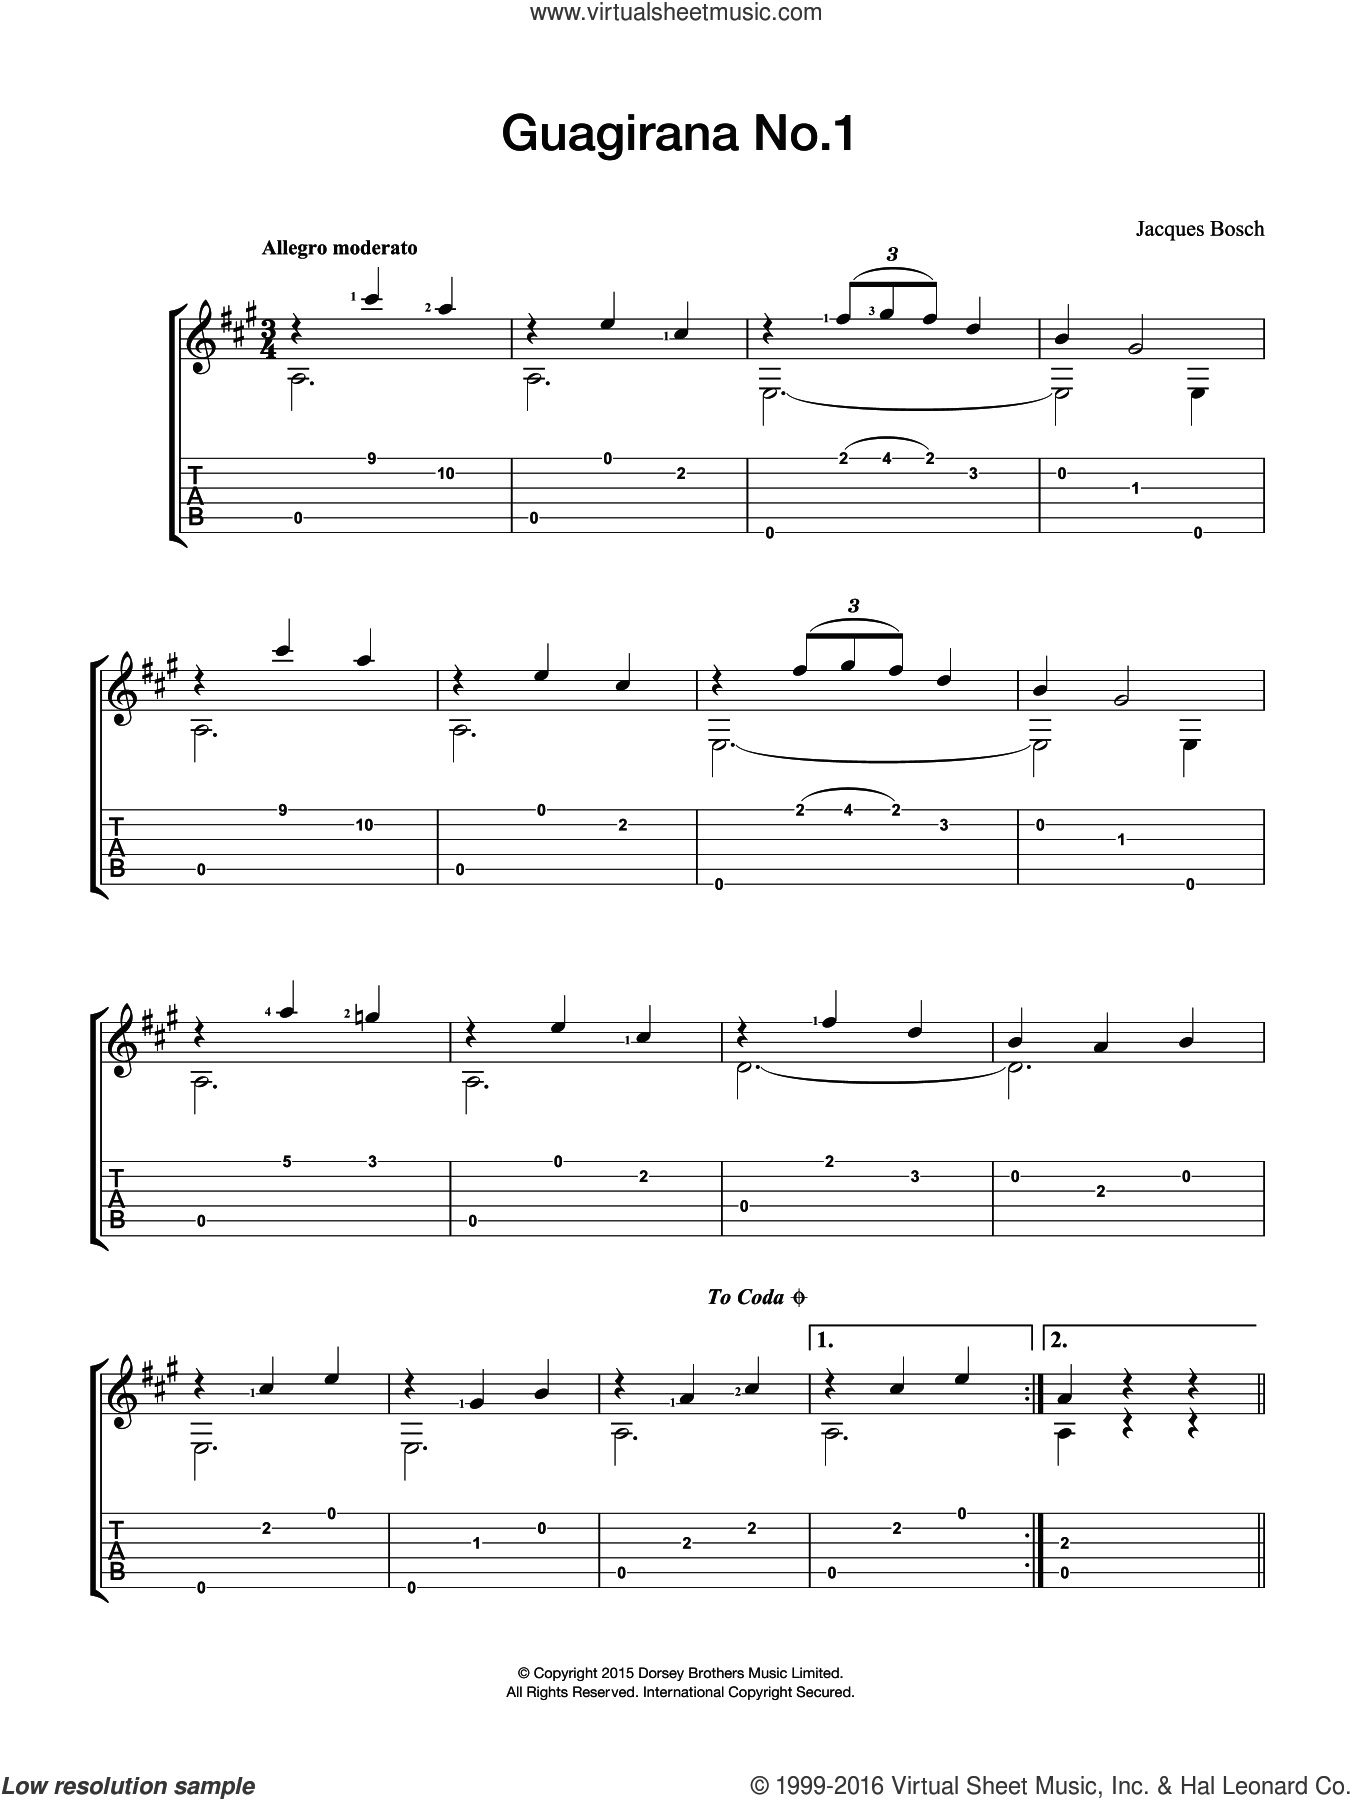 Guagirana No. 1 sheet music for guitar solo (chords) by Jacques Bosch, classical score, easy guitar (chords)